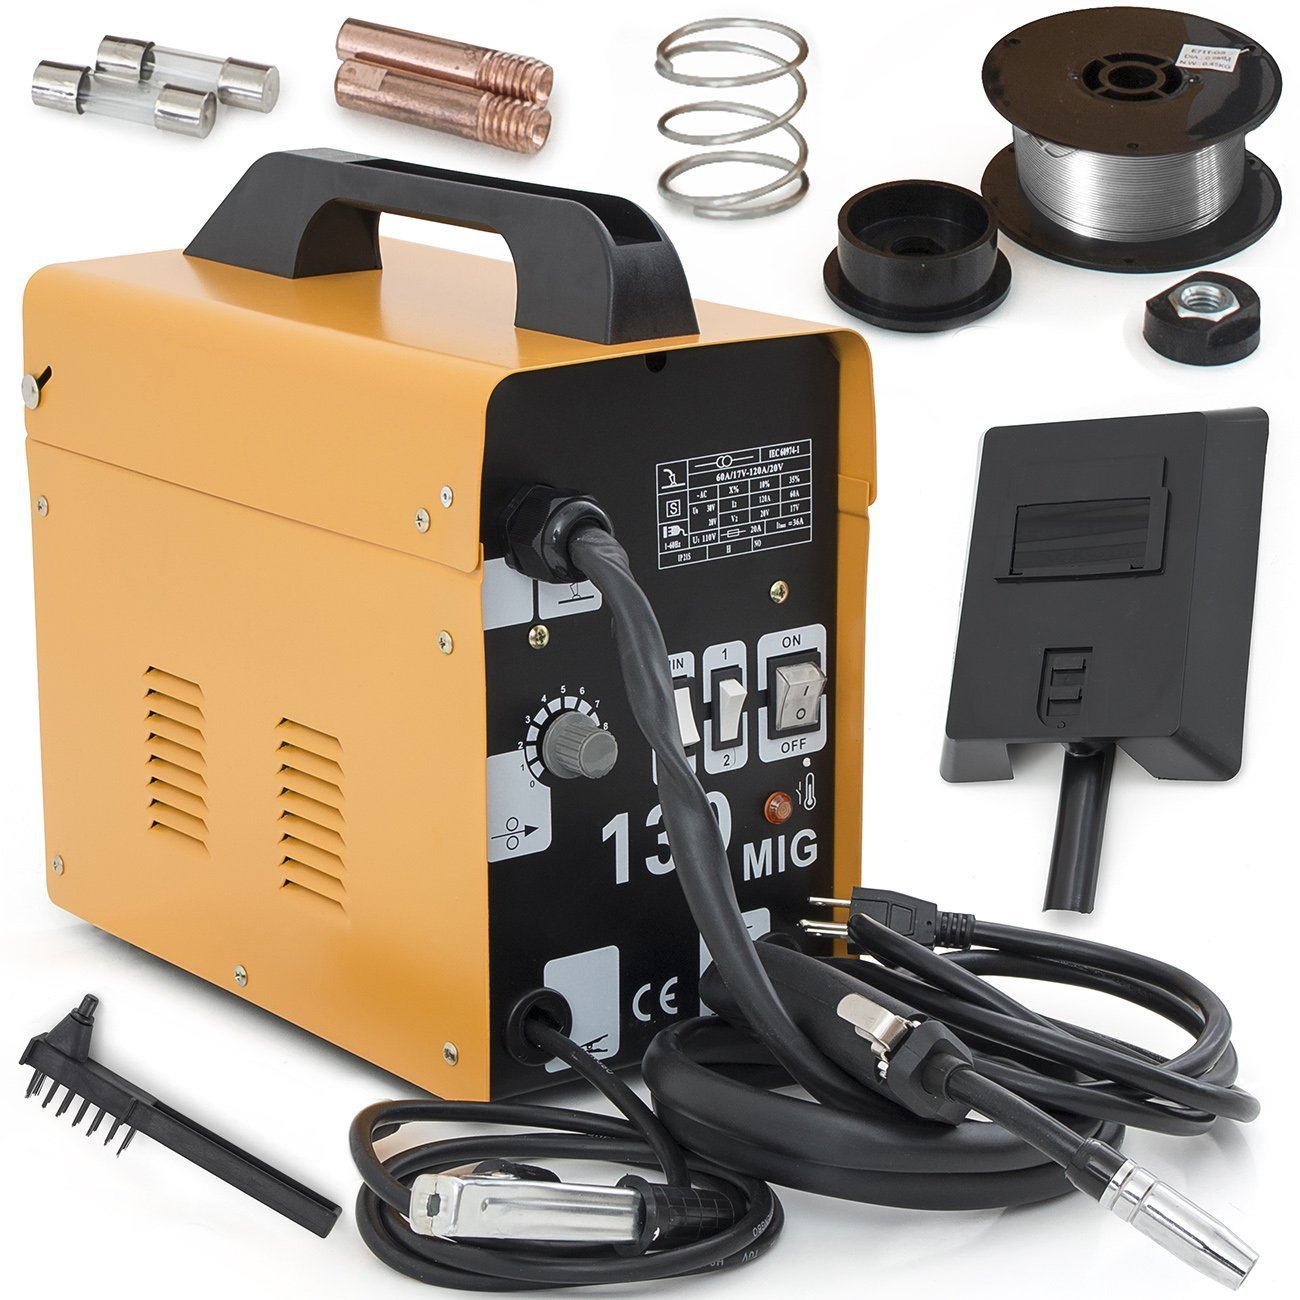 Arksen Mig 130 Welder Review Flux Core Wire Wiring A Gas Less Welding Machine Automatic Feed